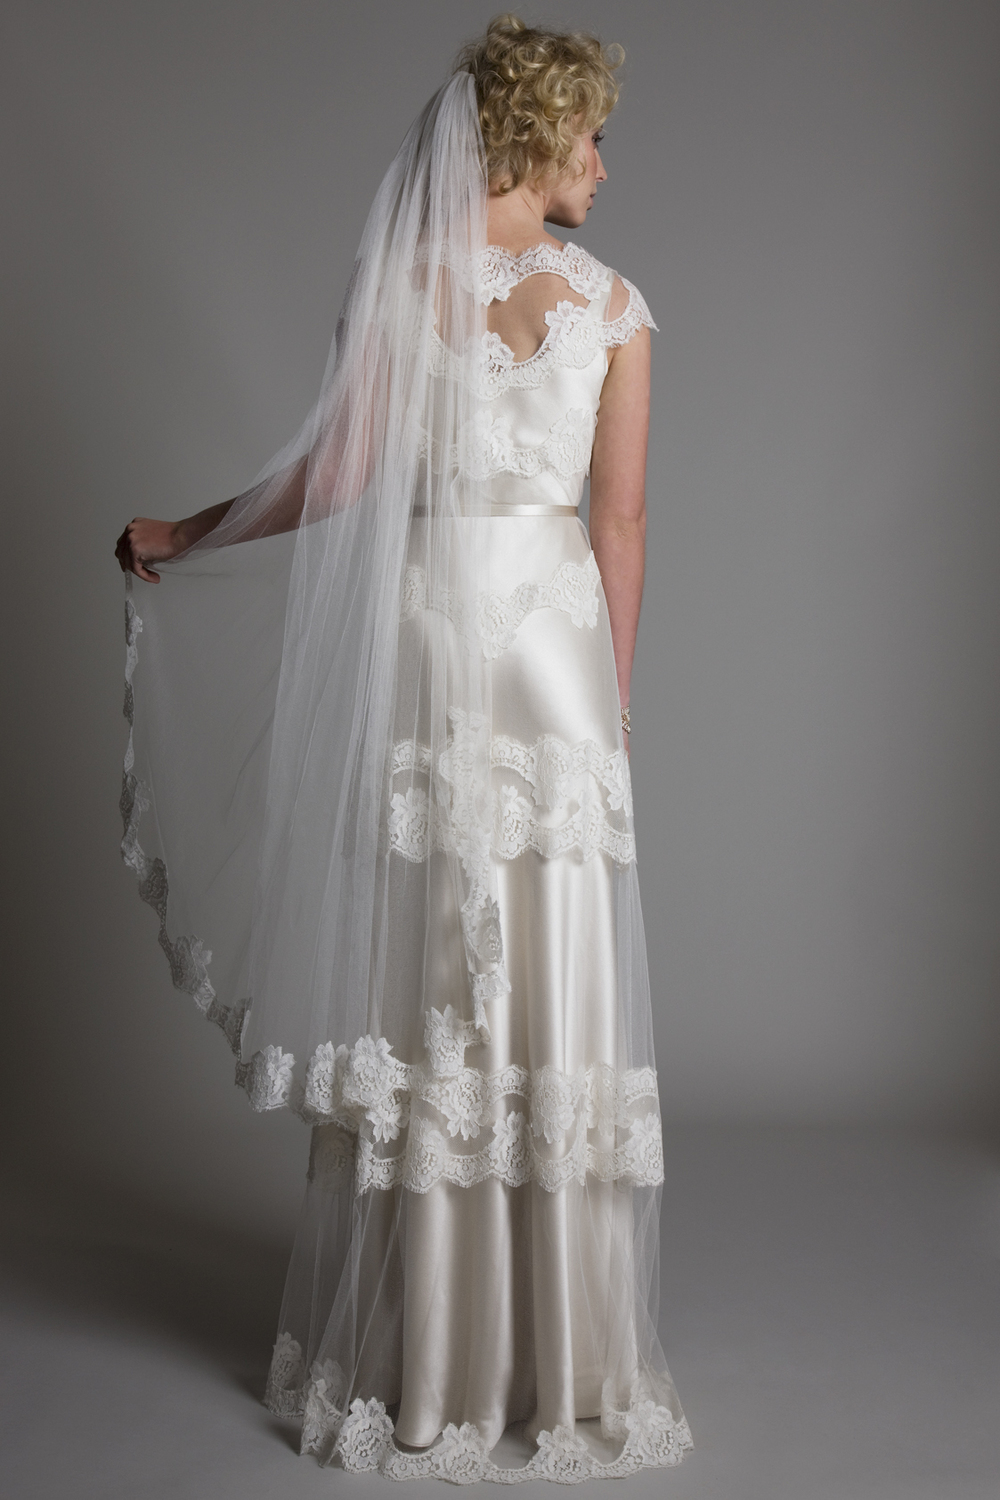 Back view of the Emily Tulle and French Lace Dress with Narrow Belt Bridal Wedding Dress by Halfpenny London